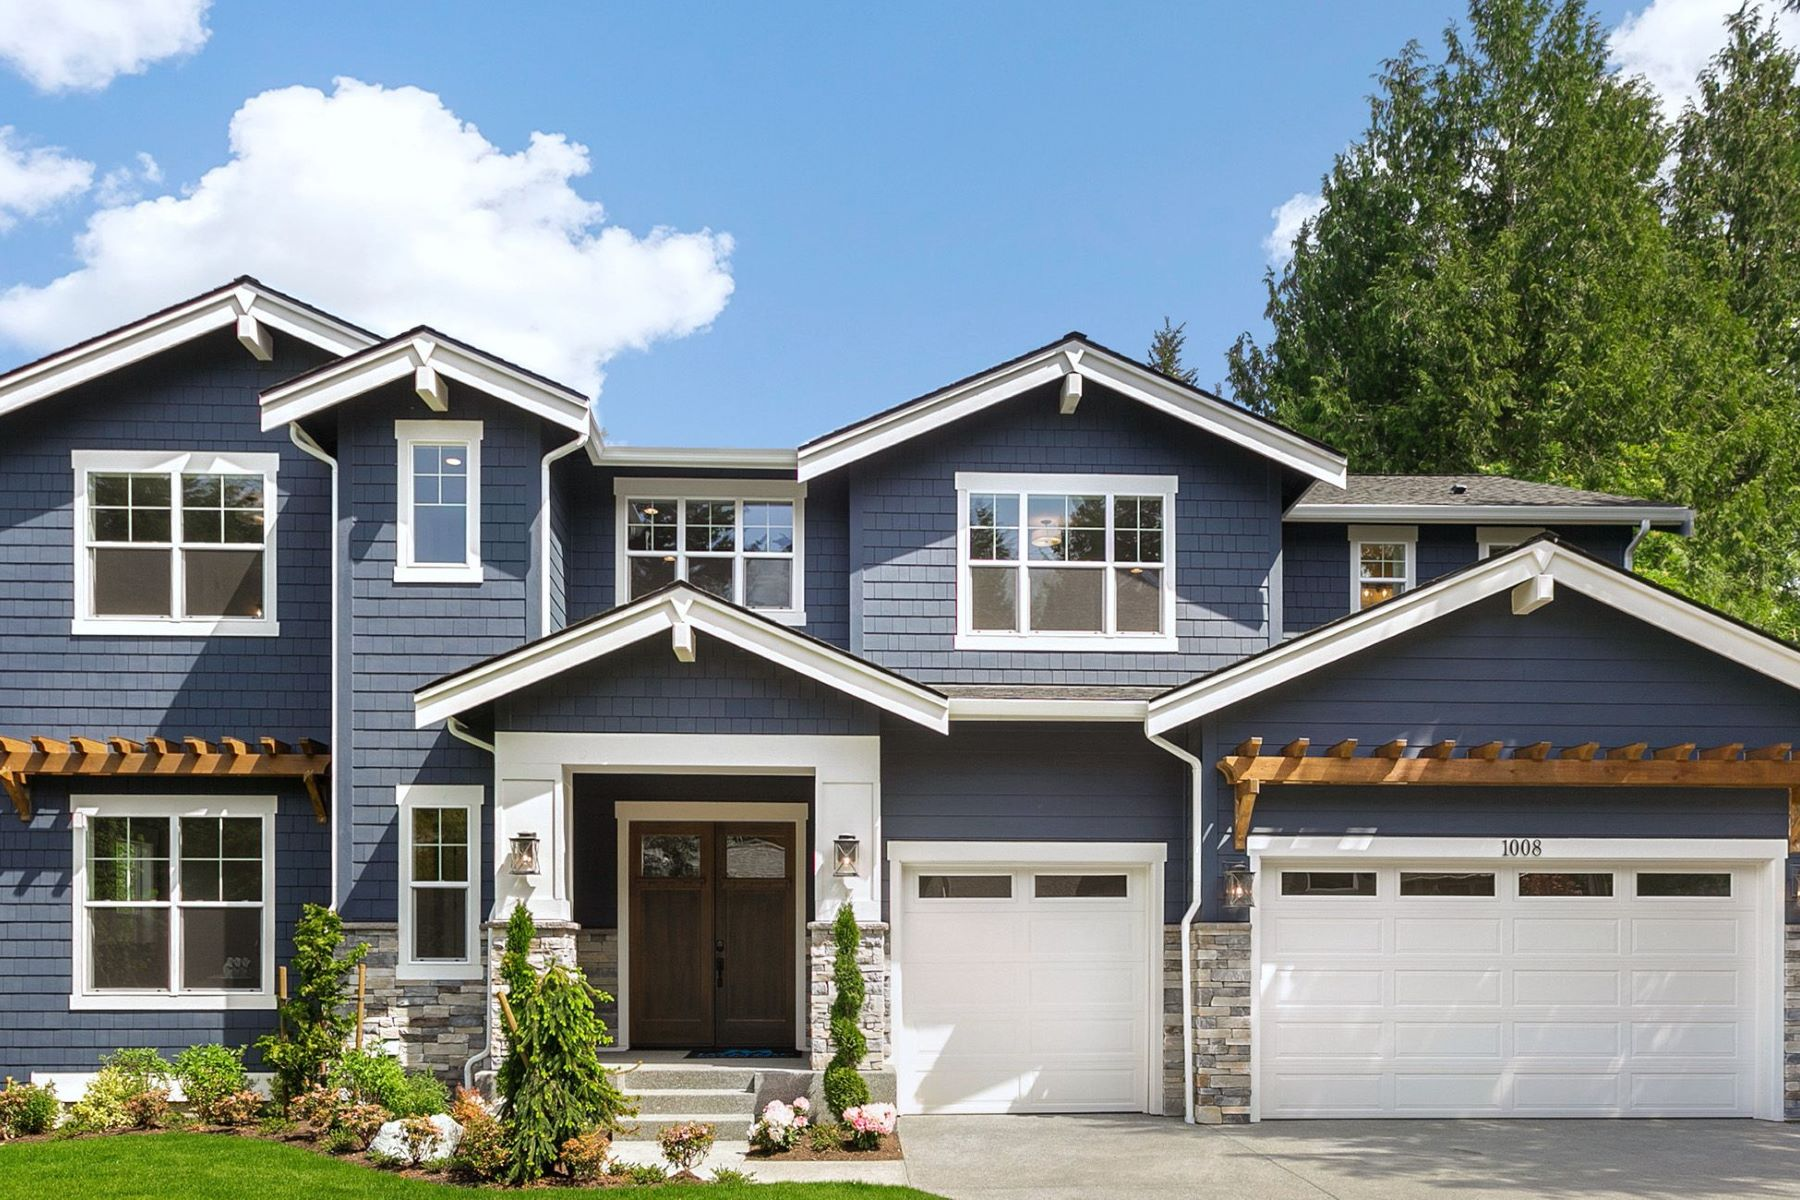 Single Family Homes for Sale at 1008 102nd Place Southeast, Bellevue, WA 98004 1008 102nd Place SE Bellevue, Washington 98004 United States